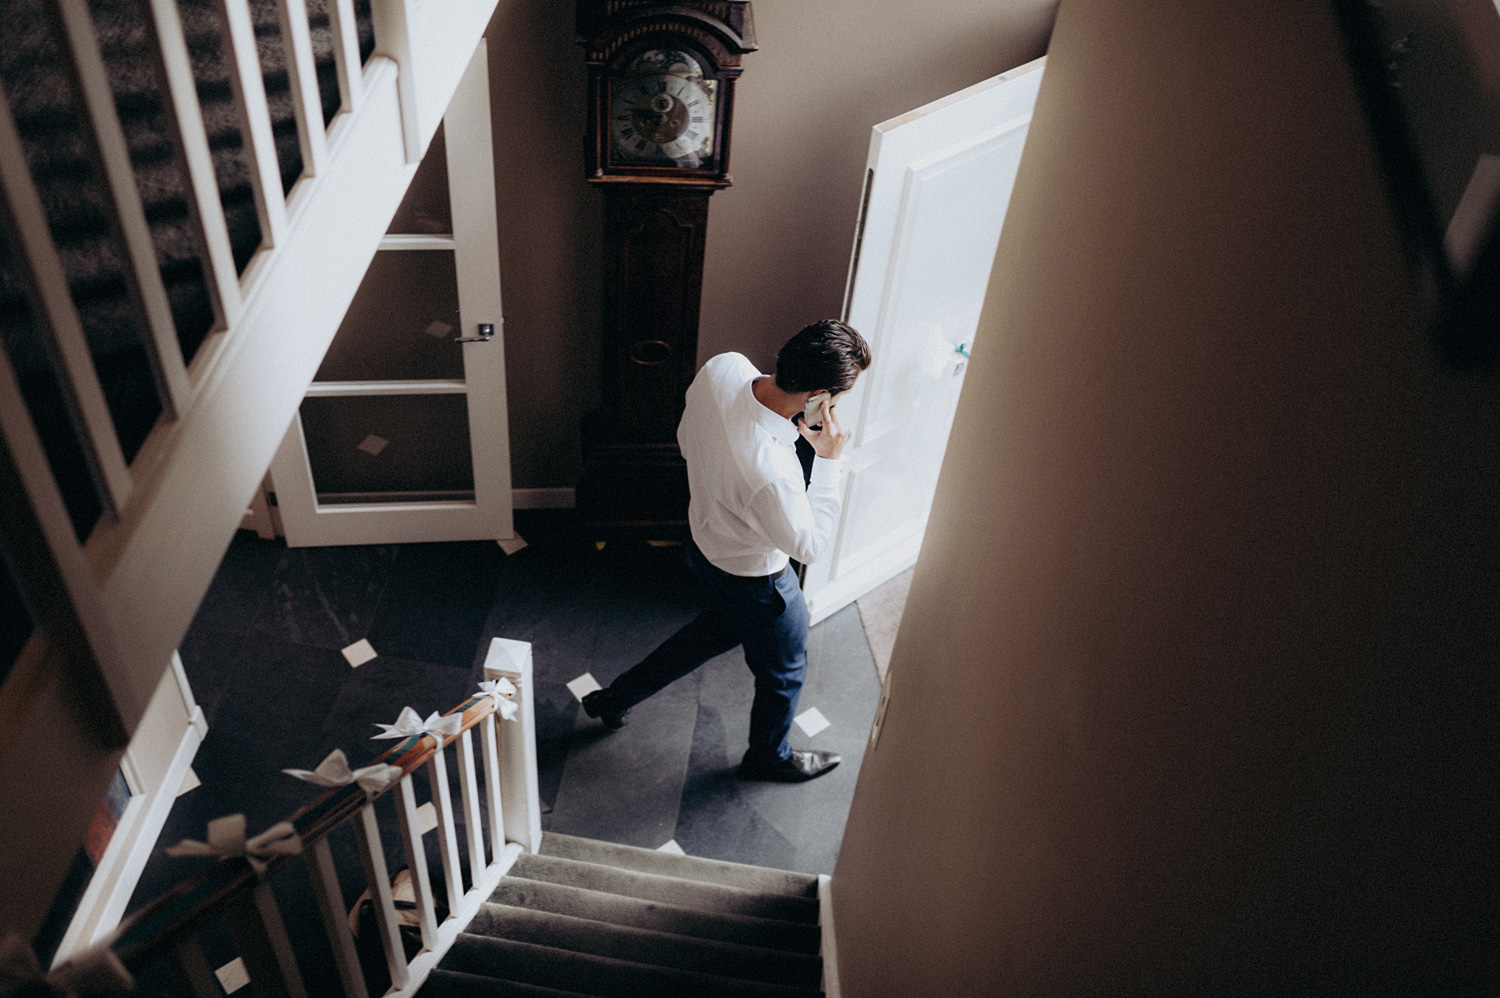 Guy on the phone down the stairs